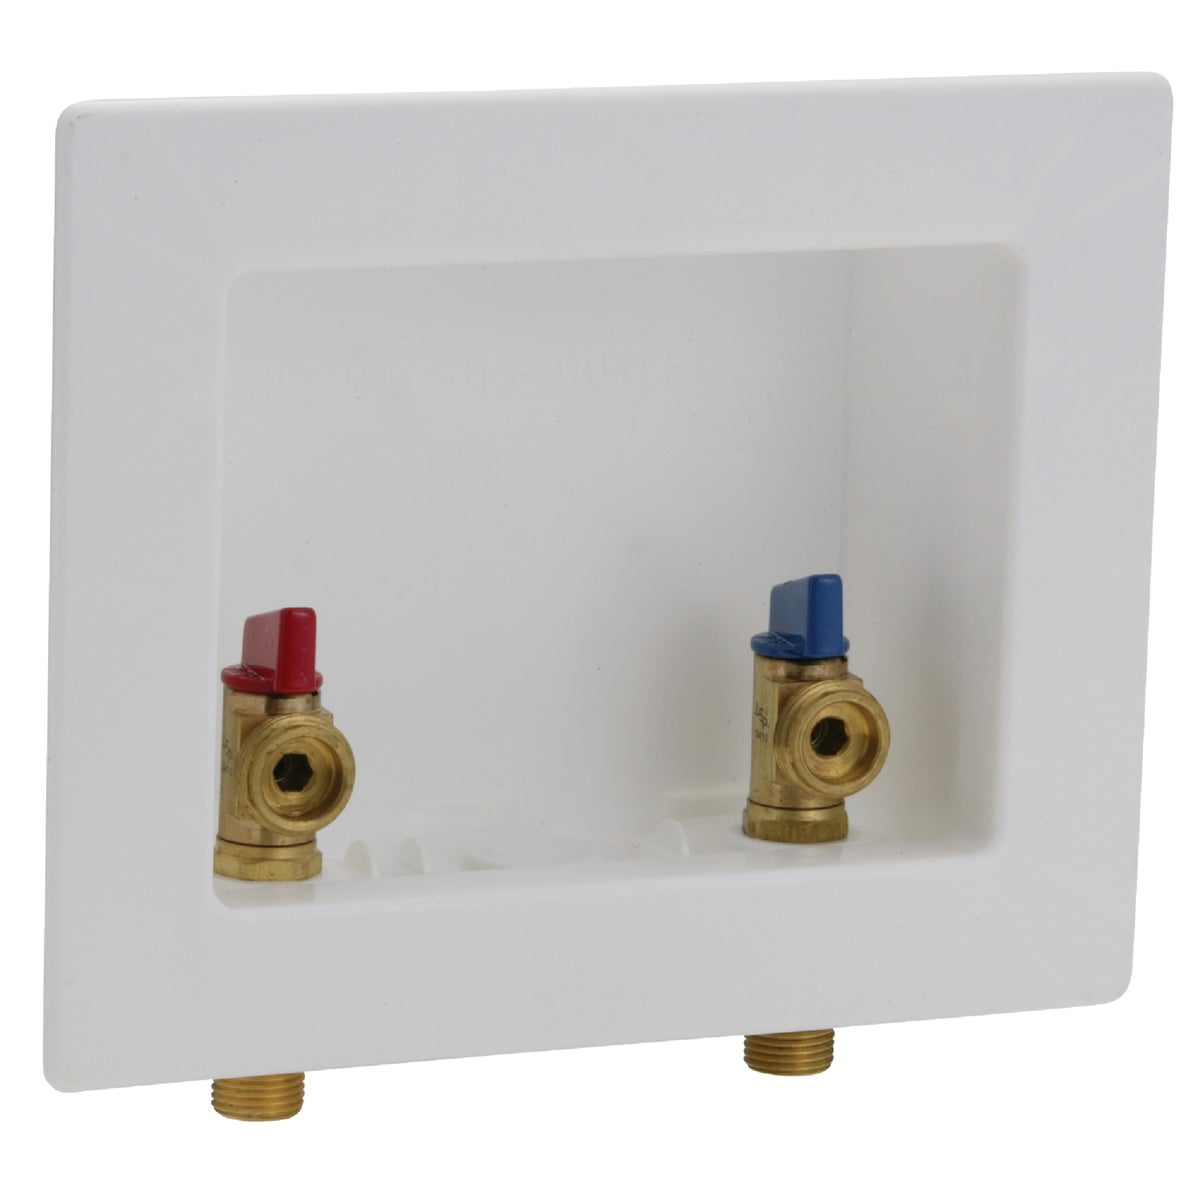 2-VALVE OUTLET BOX